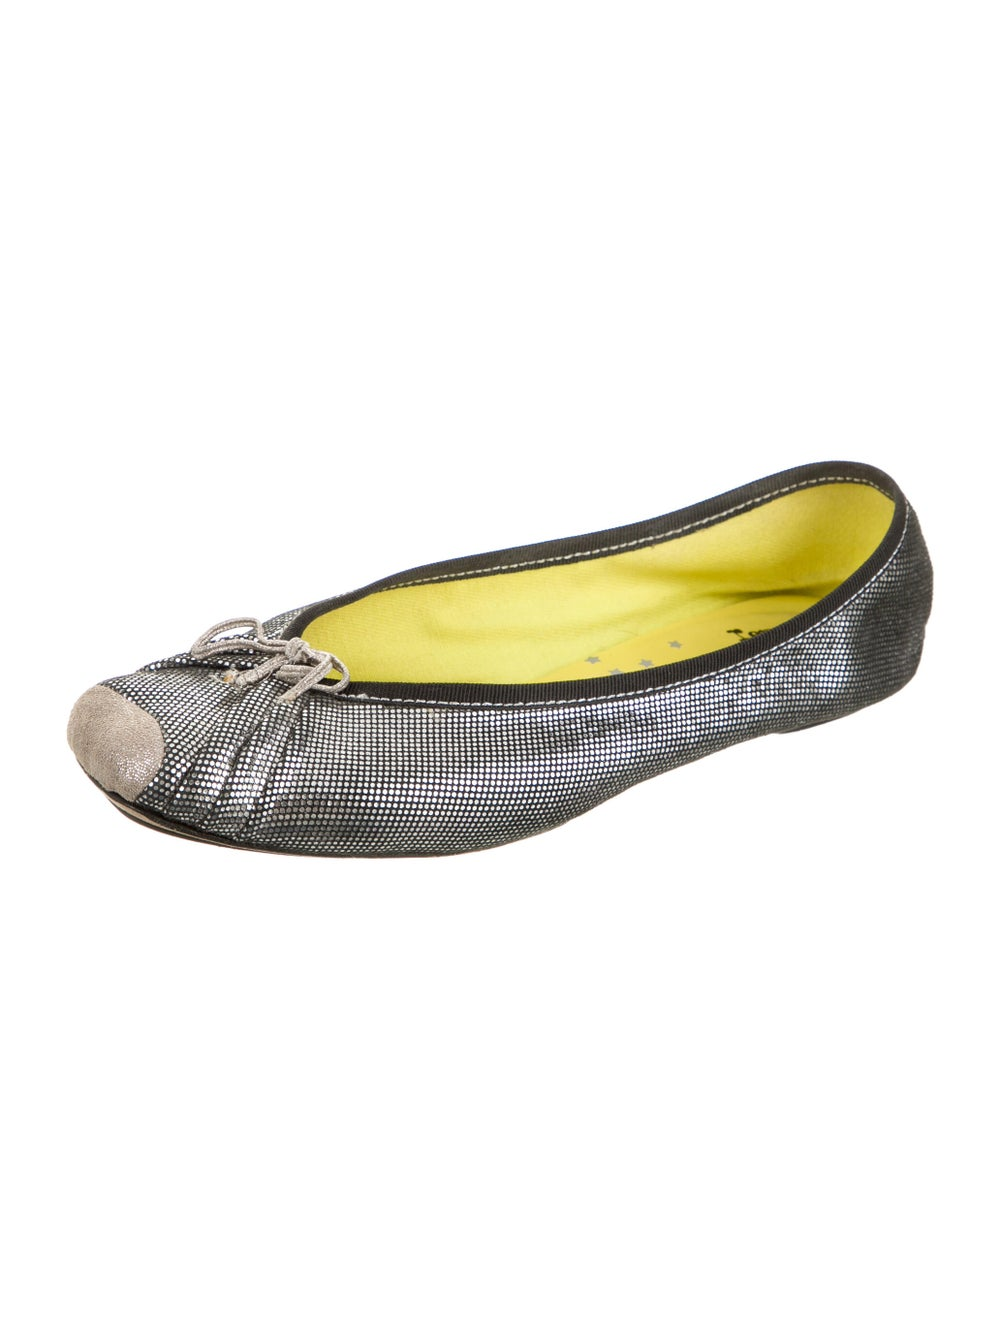 Repetto Leather Ballet Flats Metallic - image 2